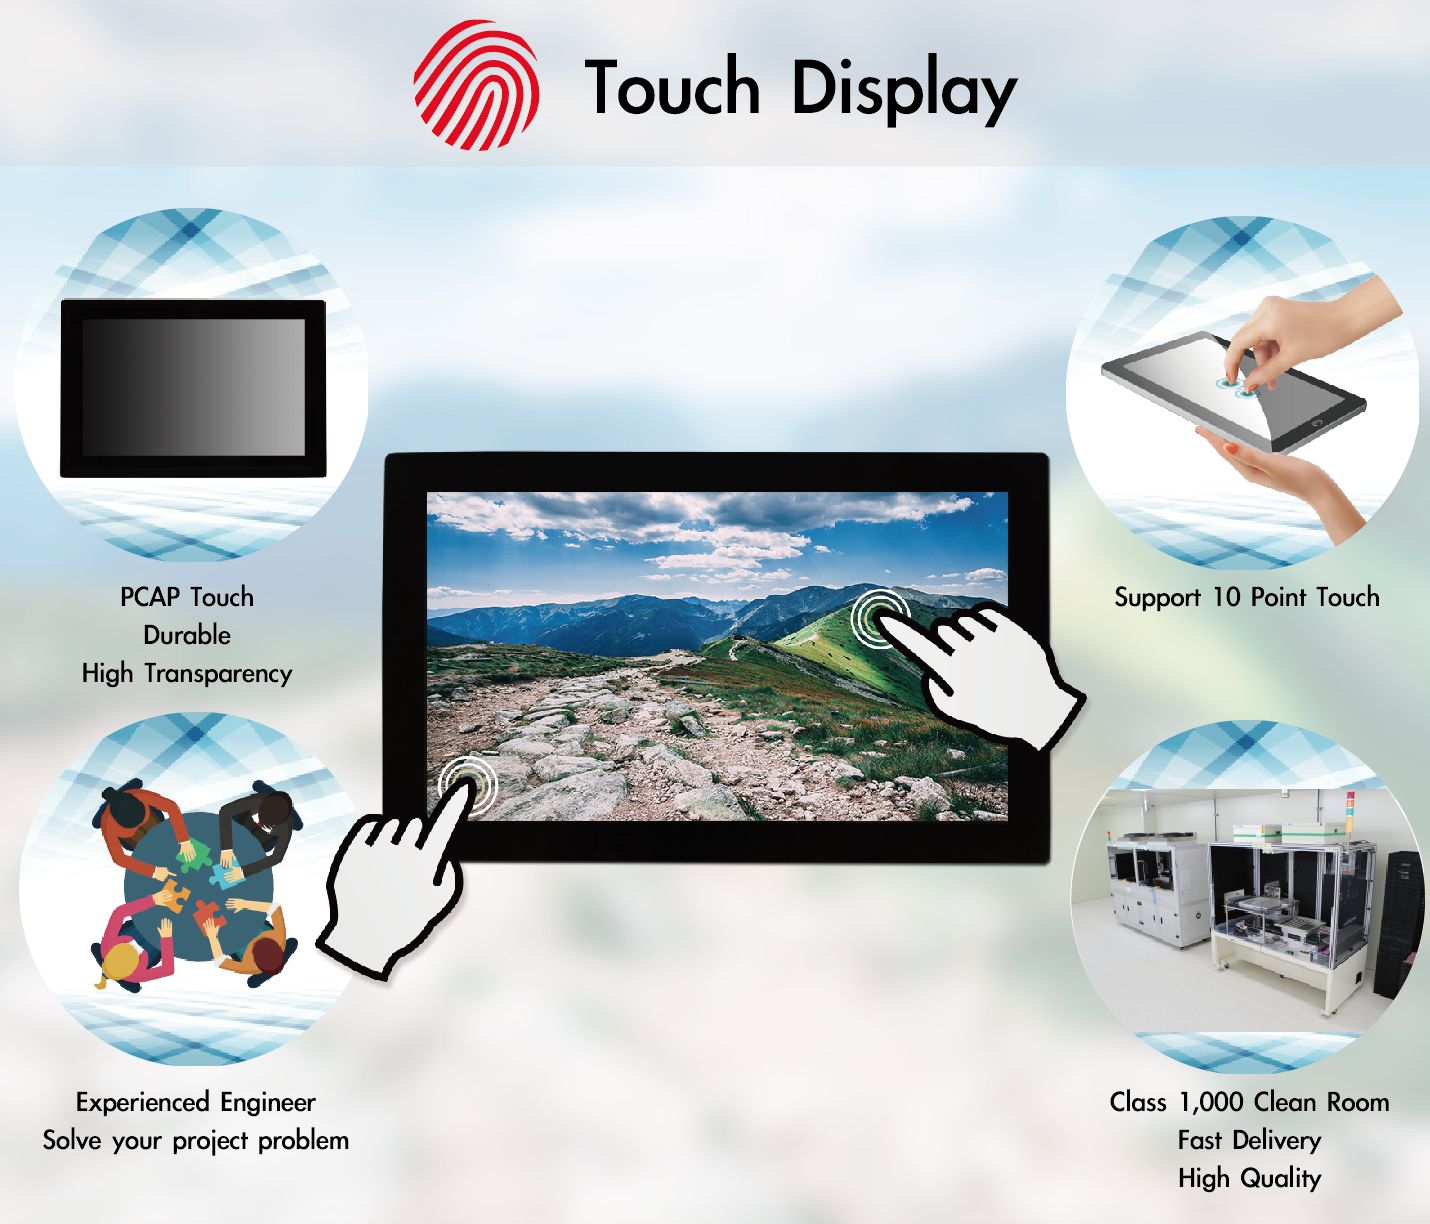 Touch Display Feature